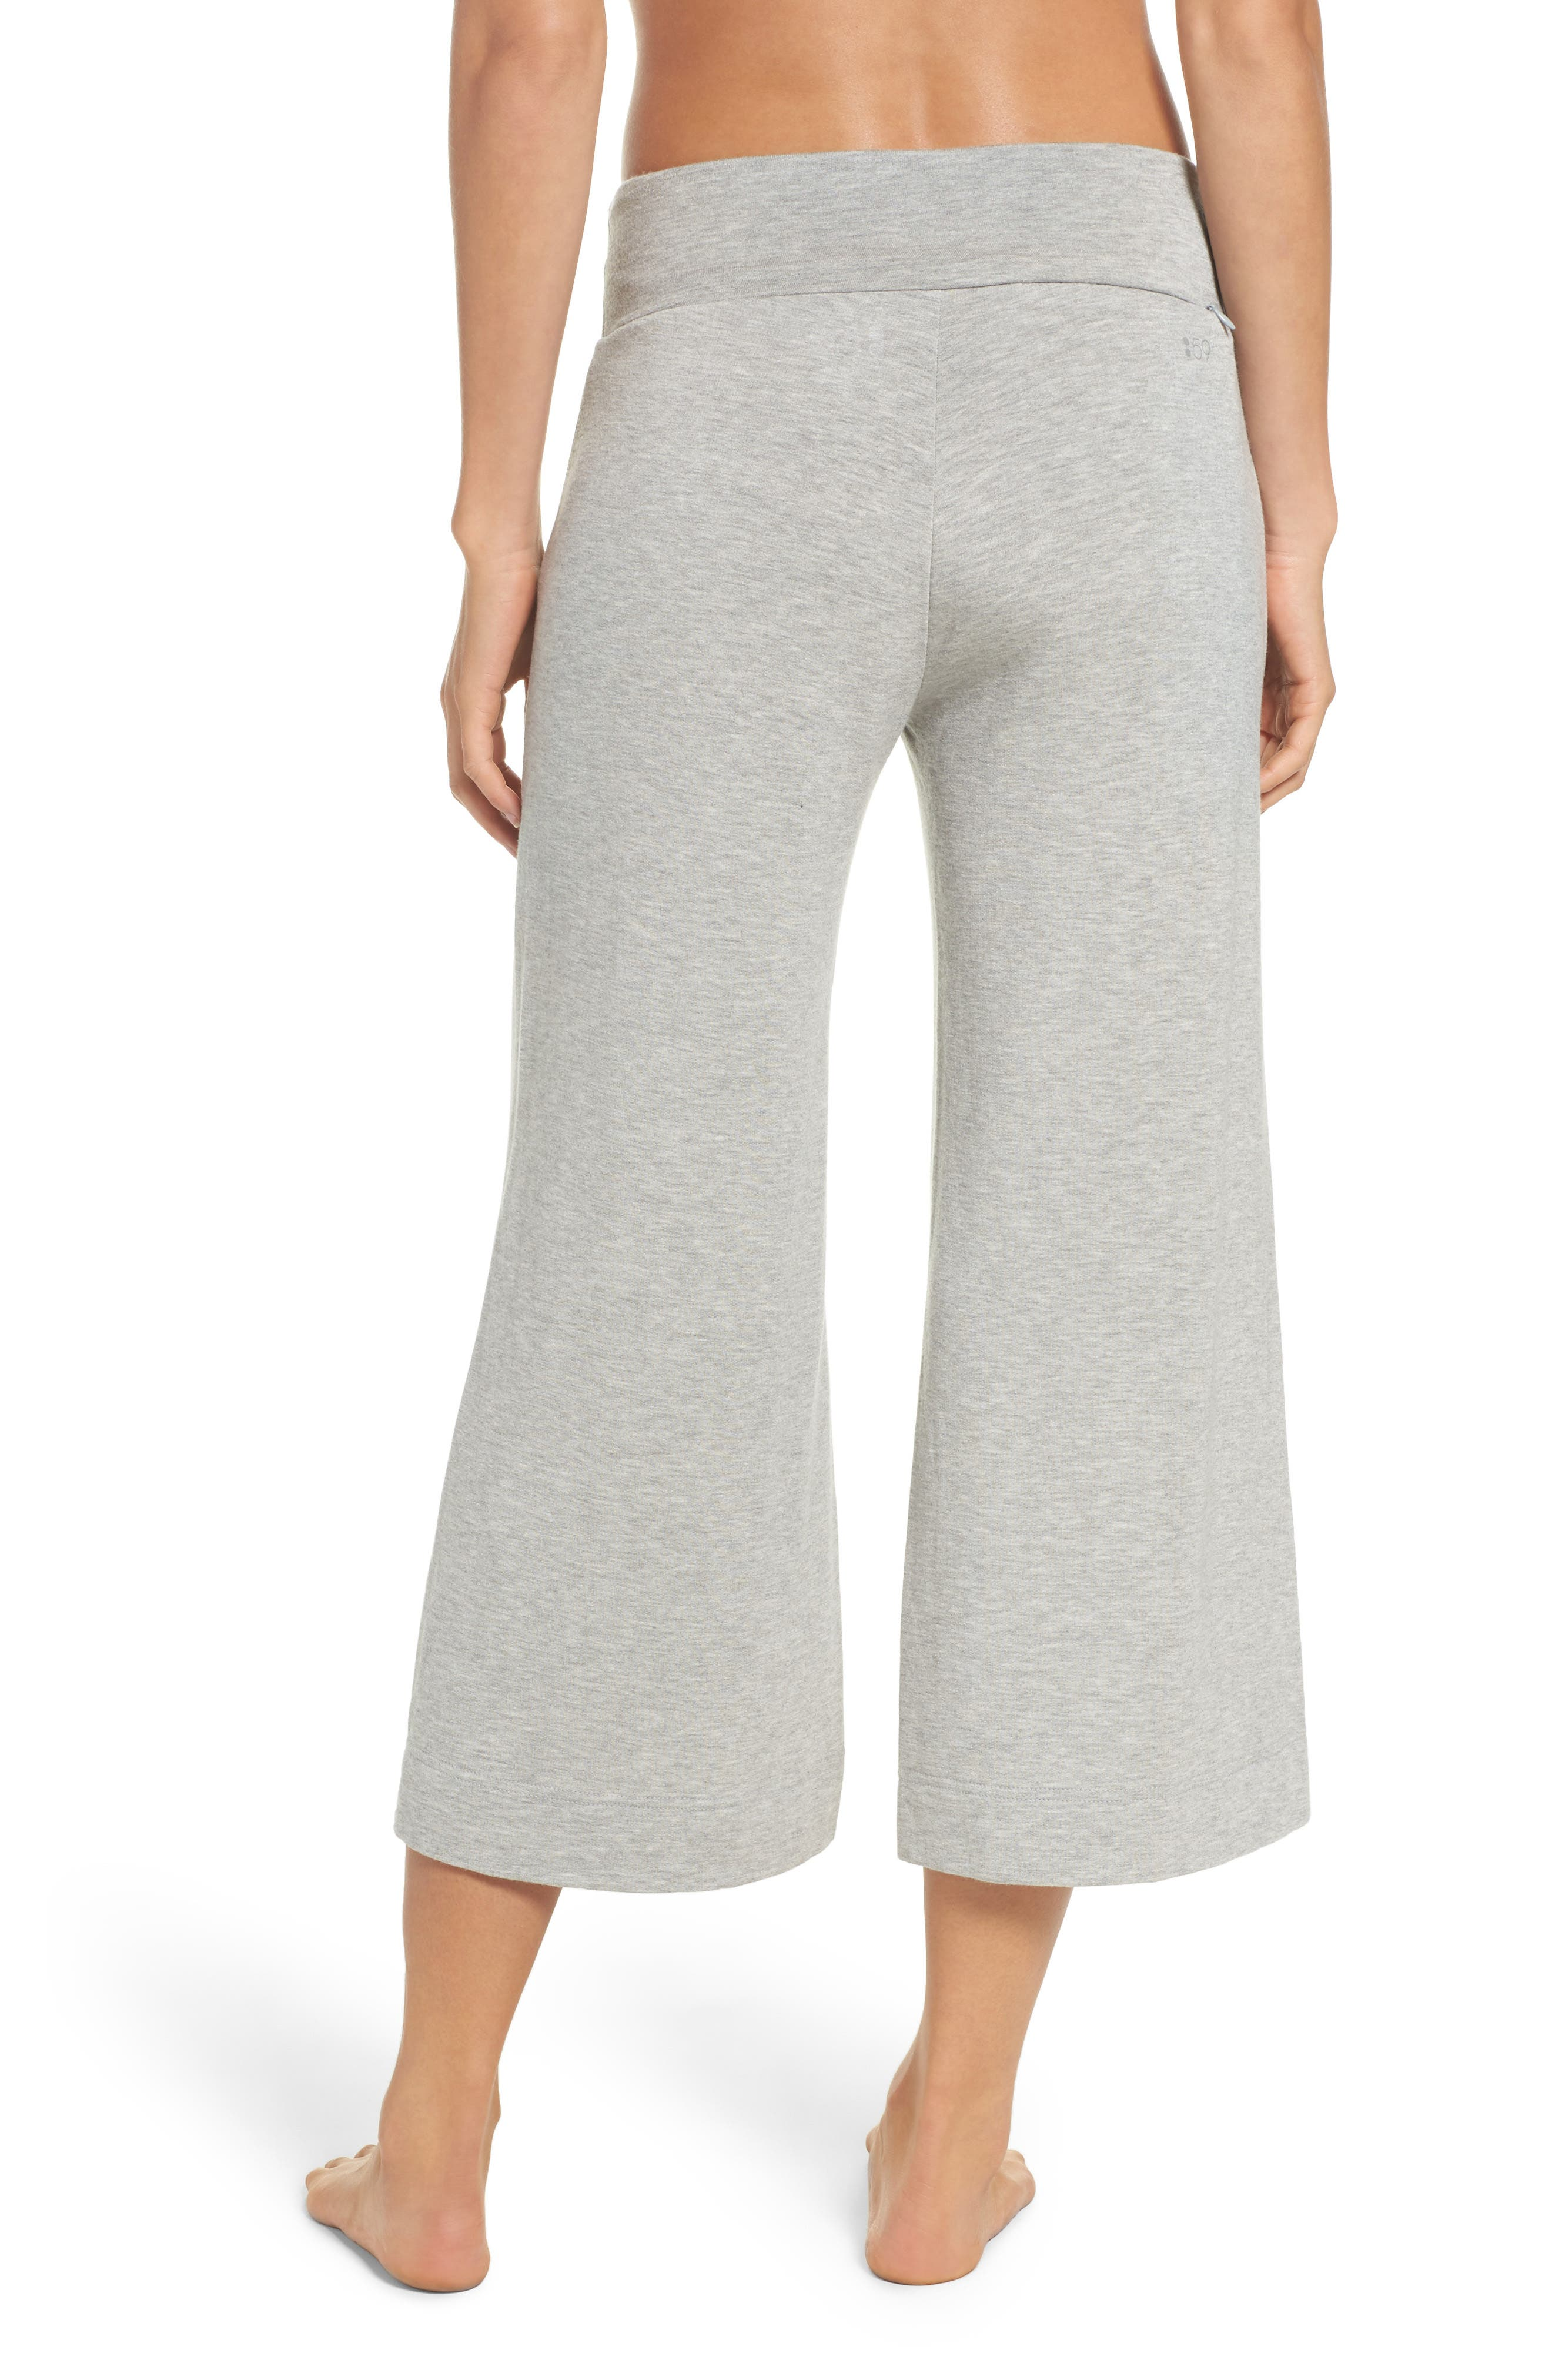 Alternate Image 2  - SPLITS59 Runway Culotte Sweatpants